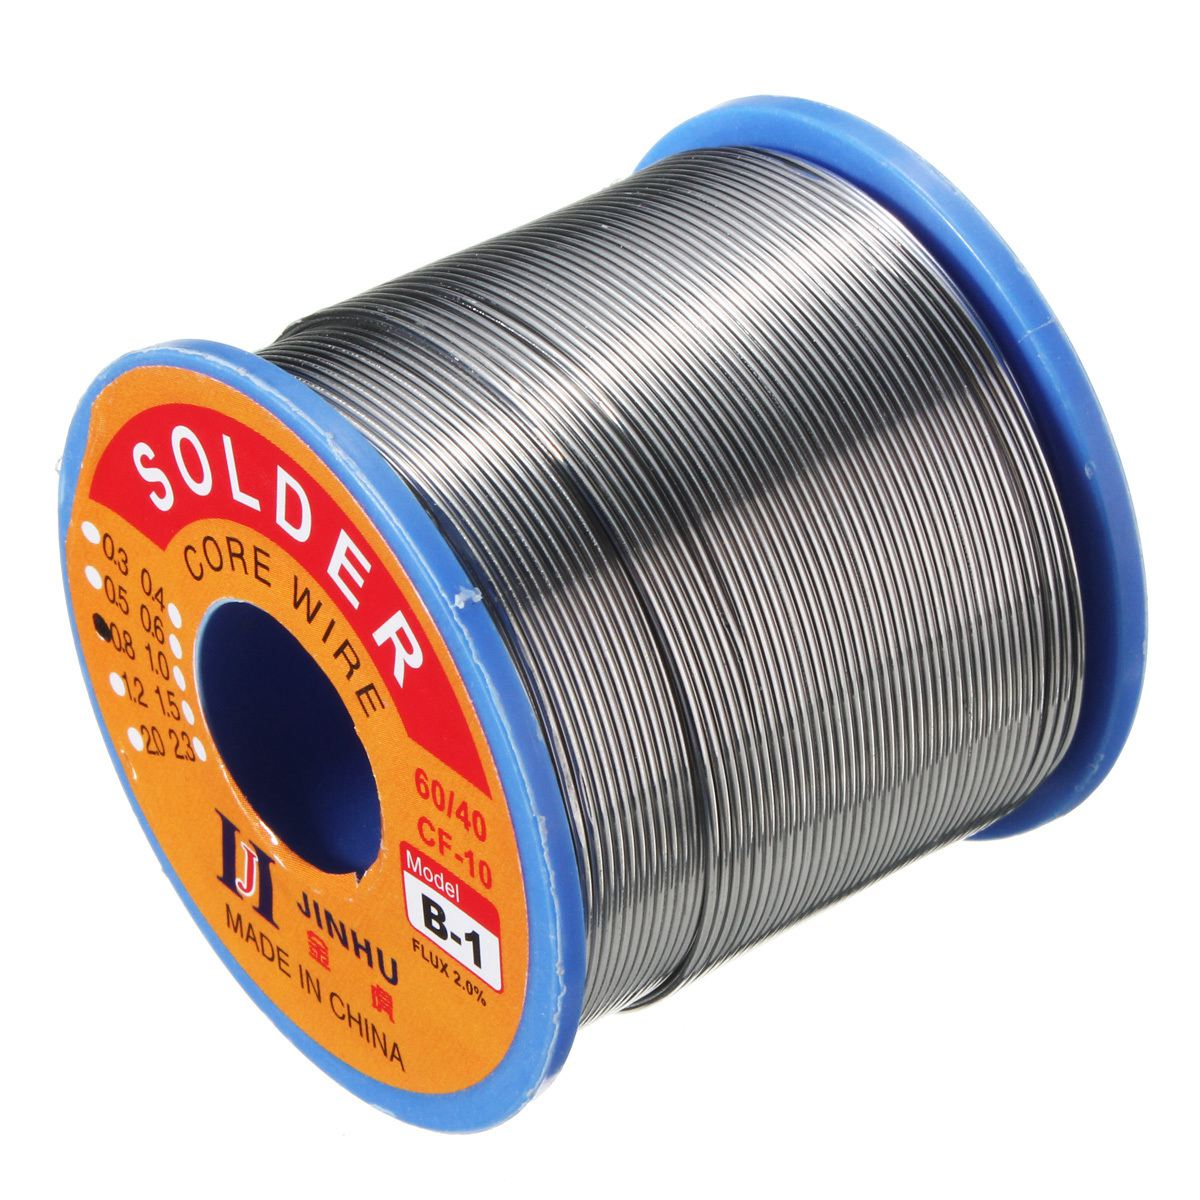 Welding & Soldering Supplies